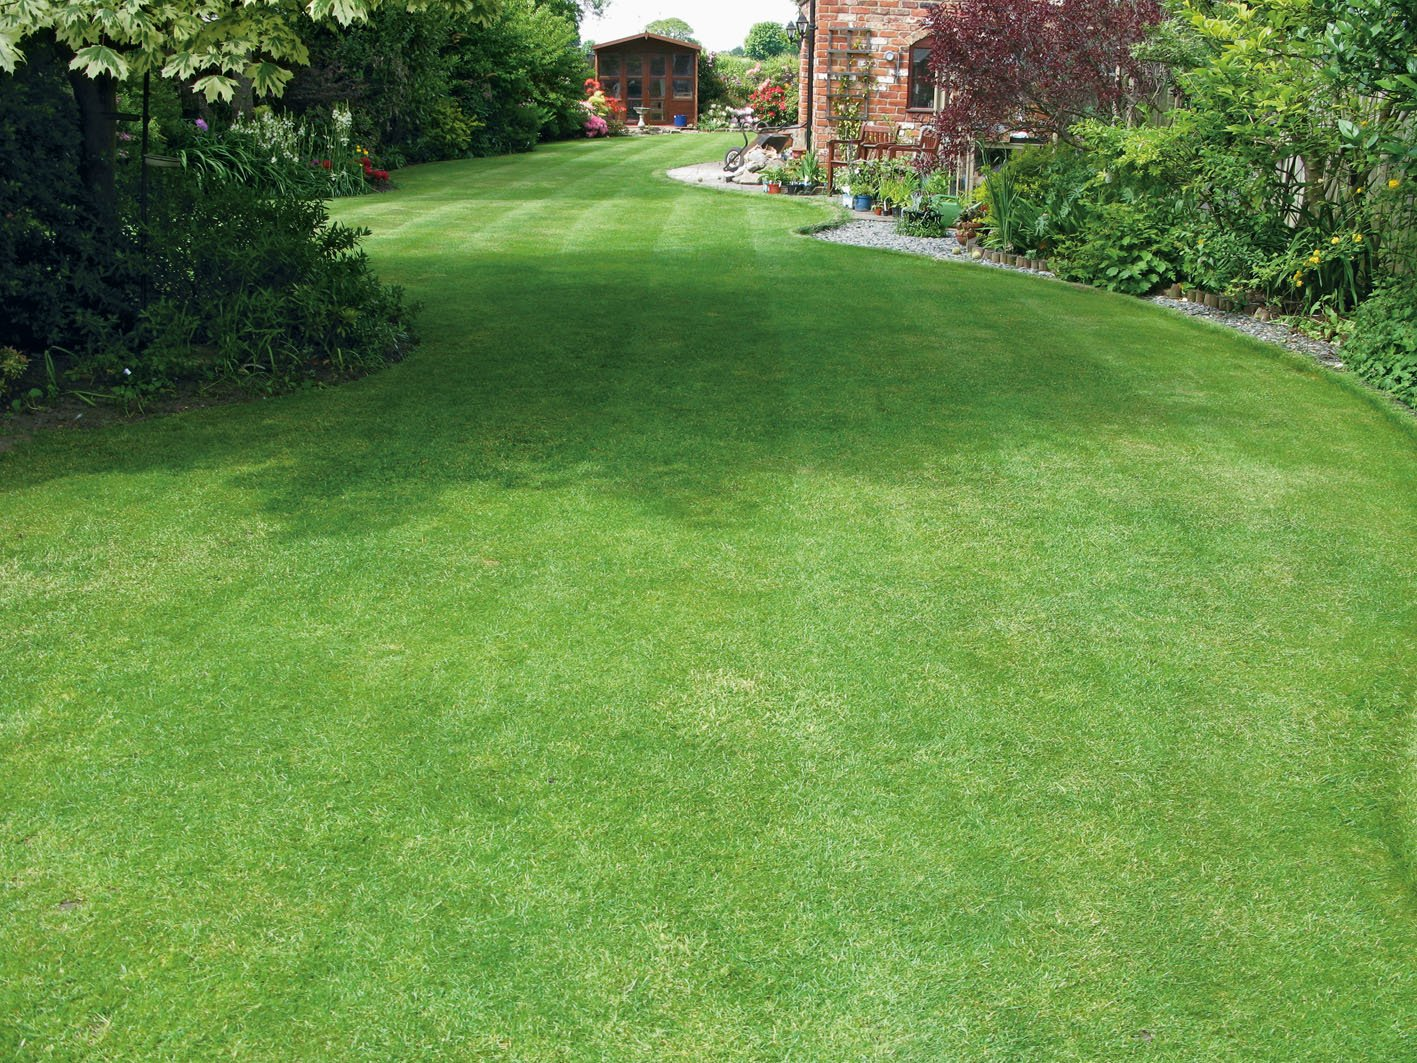 How To Create A Greener, Lusher Lawn